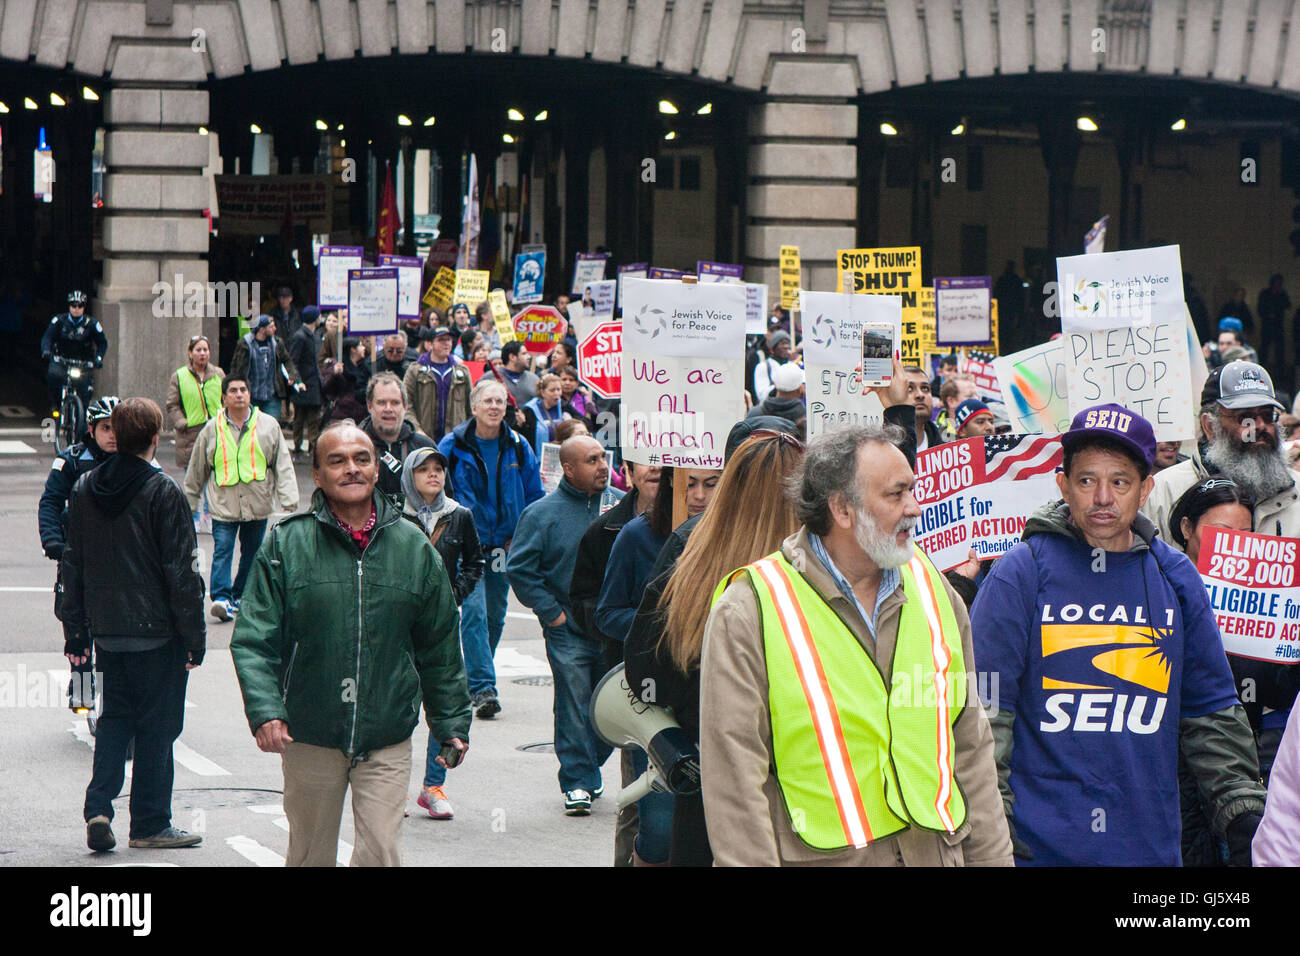 Hundreds of marchers unite on May Day in Chicago to protest Donald Trump's anti immigrant rhetoric. - Stock Image